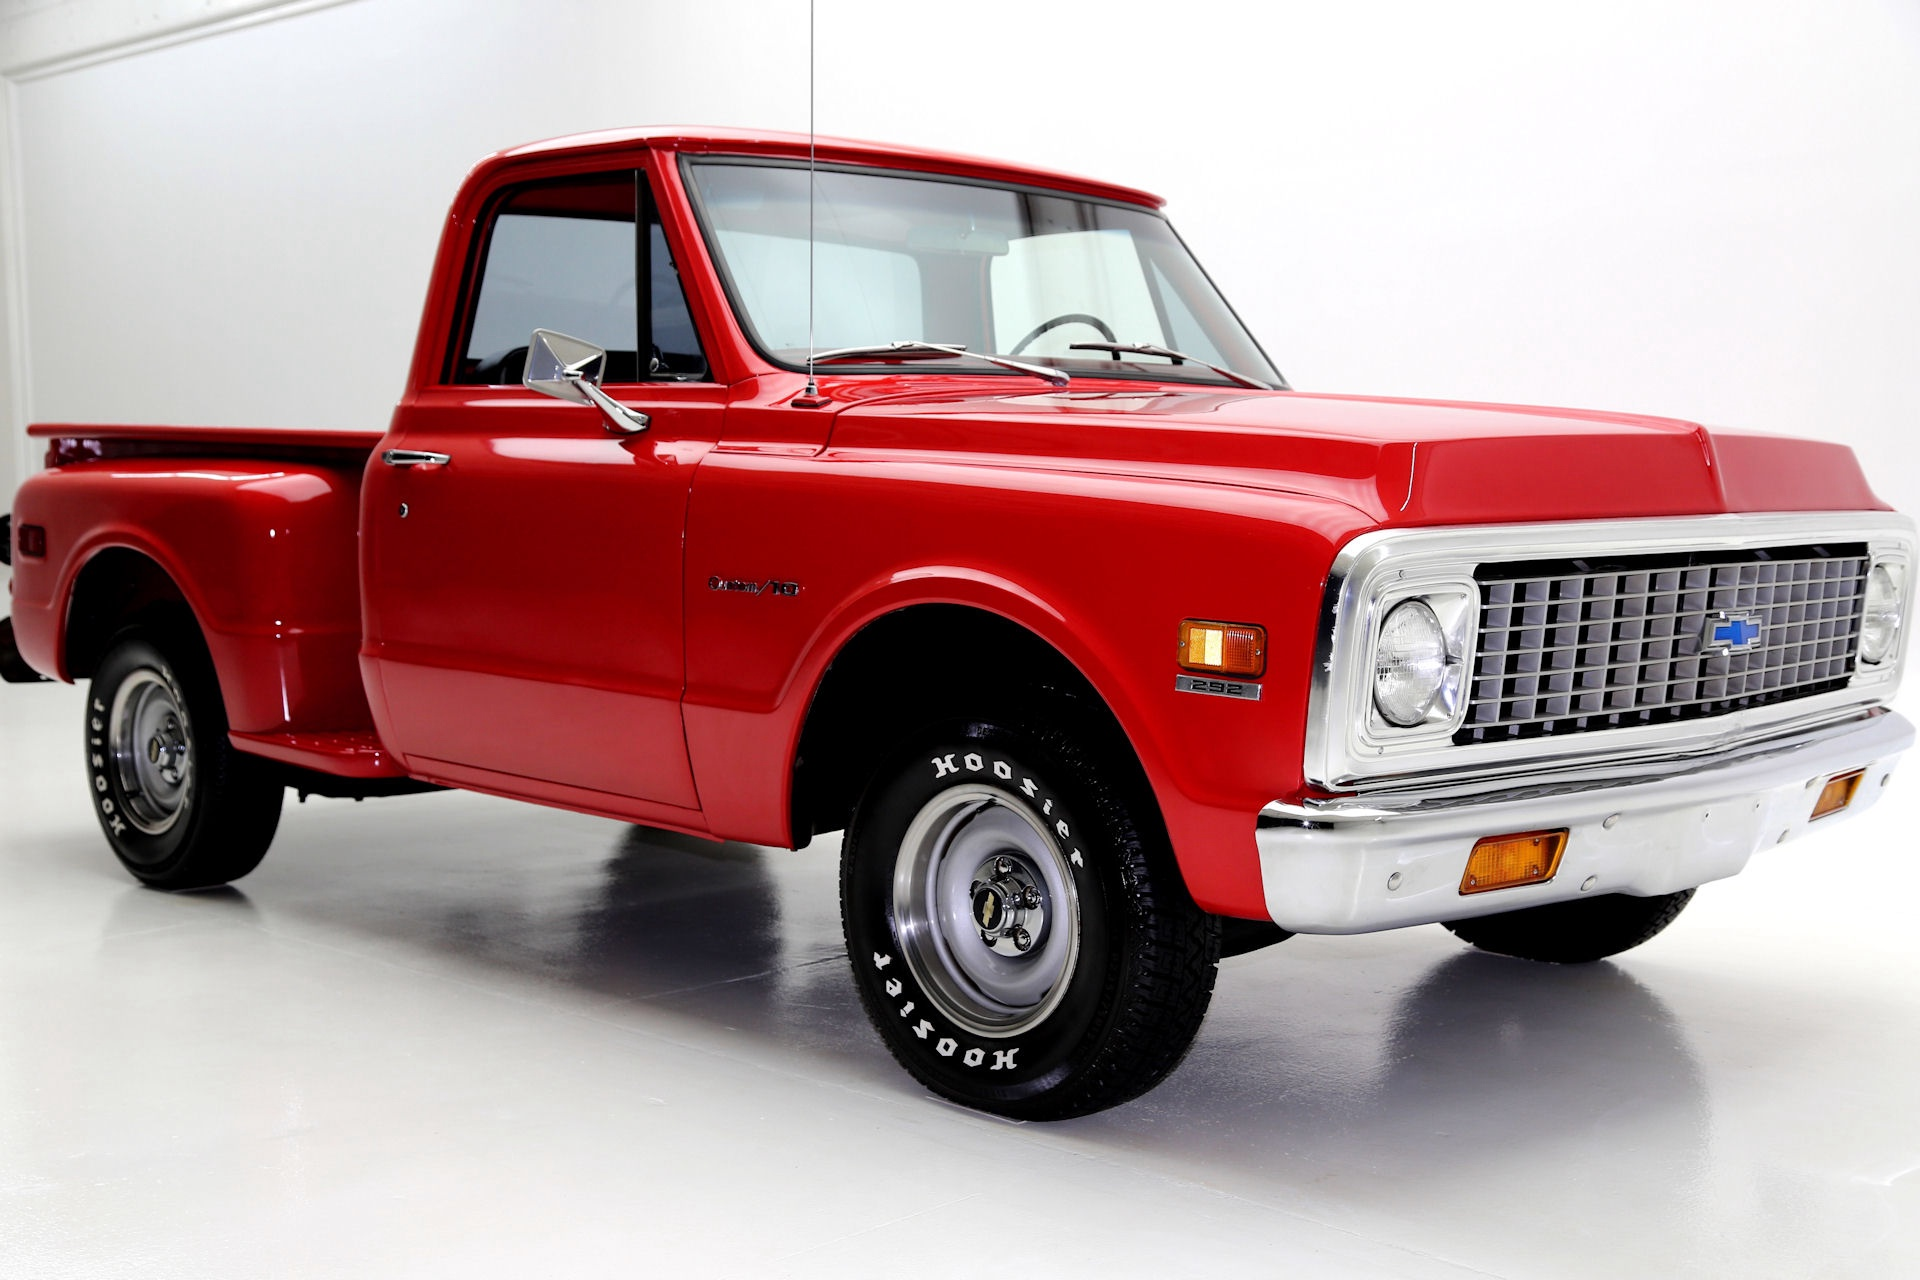 1968 Chevy C10 Shop Manual Today Guide Trends Sample Stepside Images Gallery